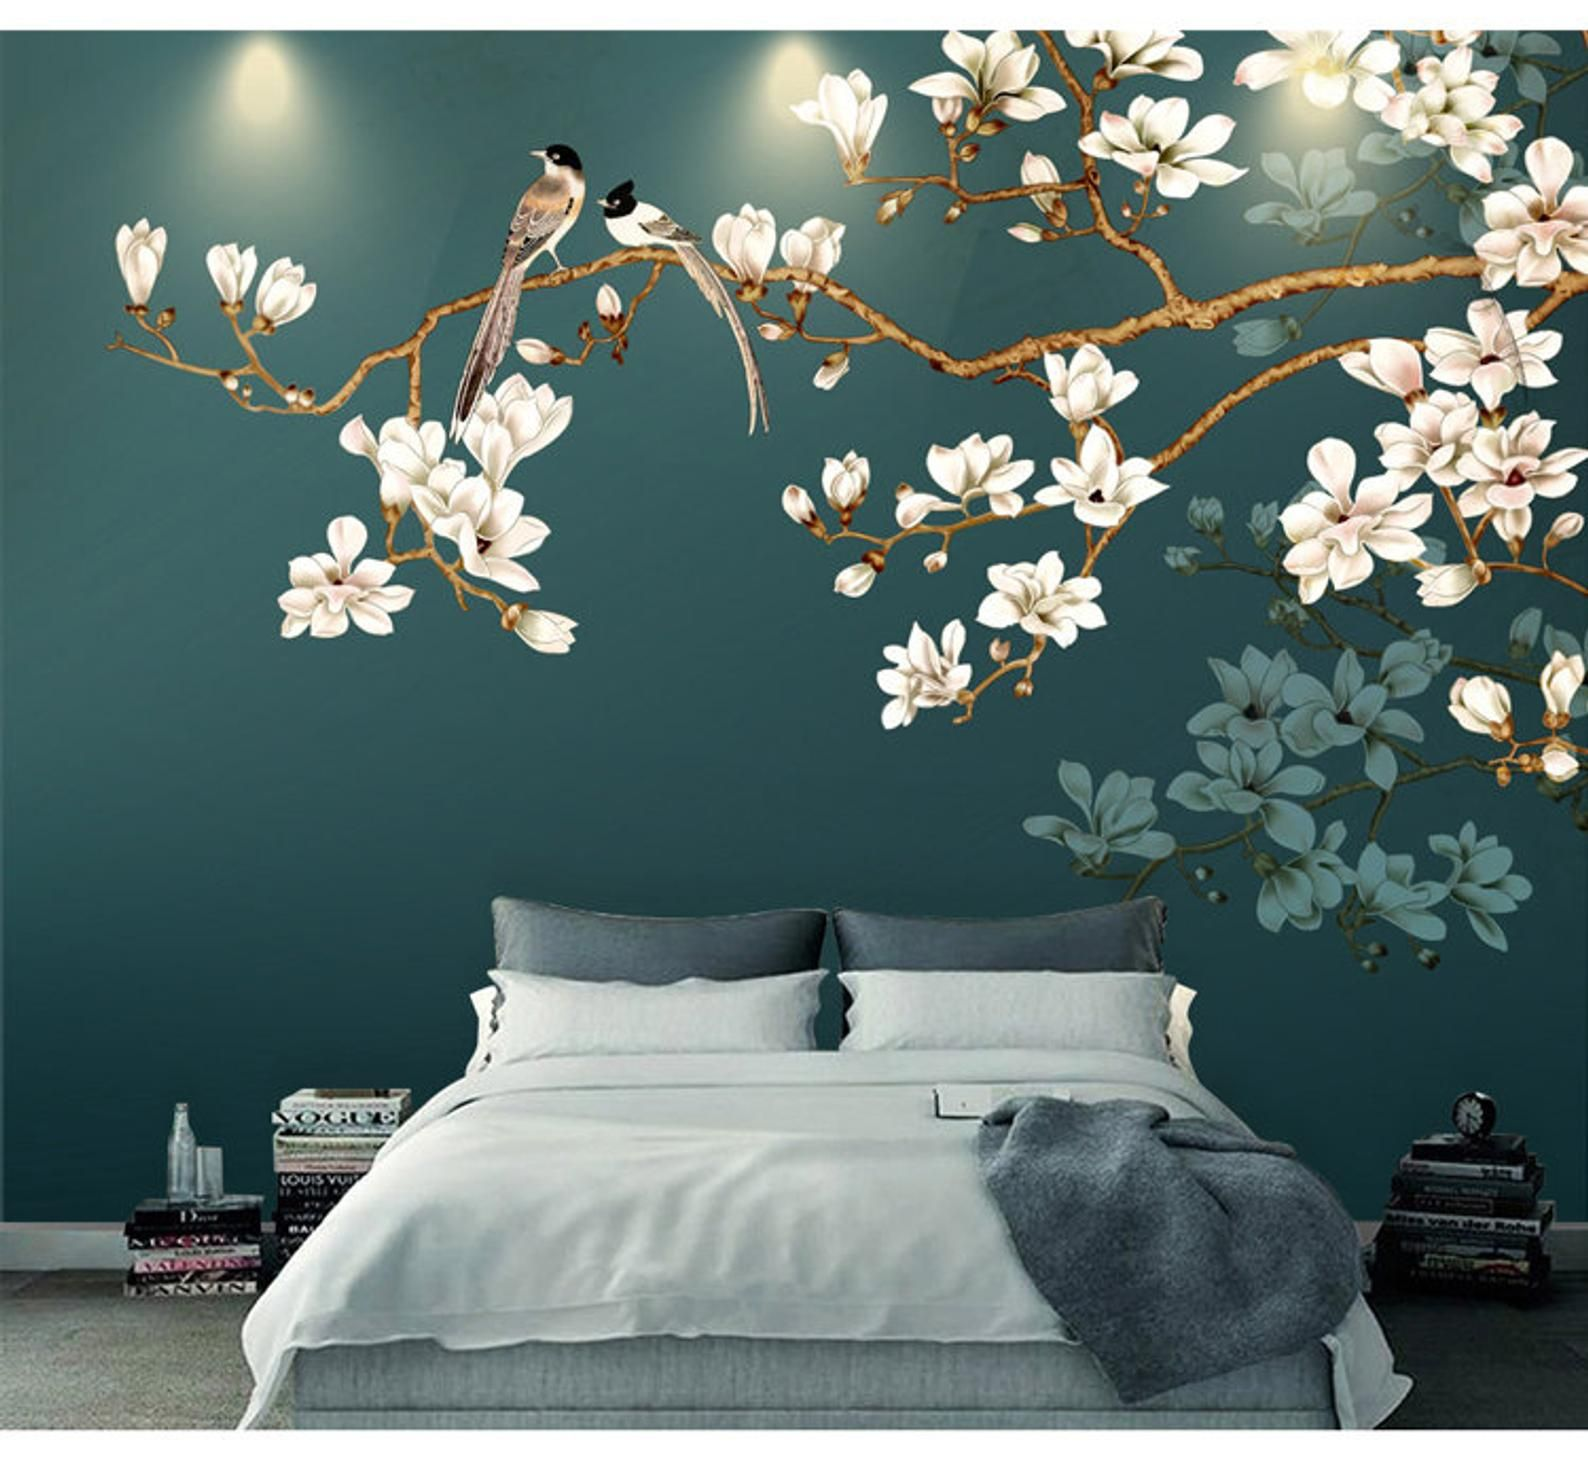 Hand Painting Hanging Branch Tree Flowers And Birds Wallpaper Wall Mural Simple Elegant White Ivory Flowers Floral Wall Mural Wall Art Bedroom Wall Paint Mural Wall Art Wall Paint Designs